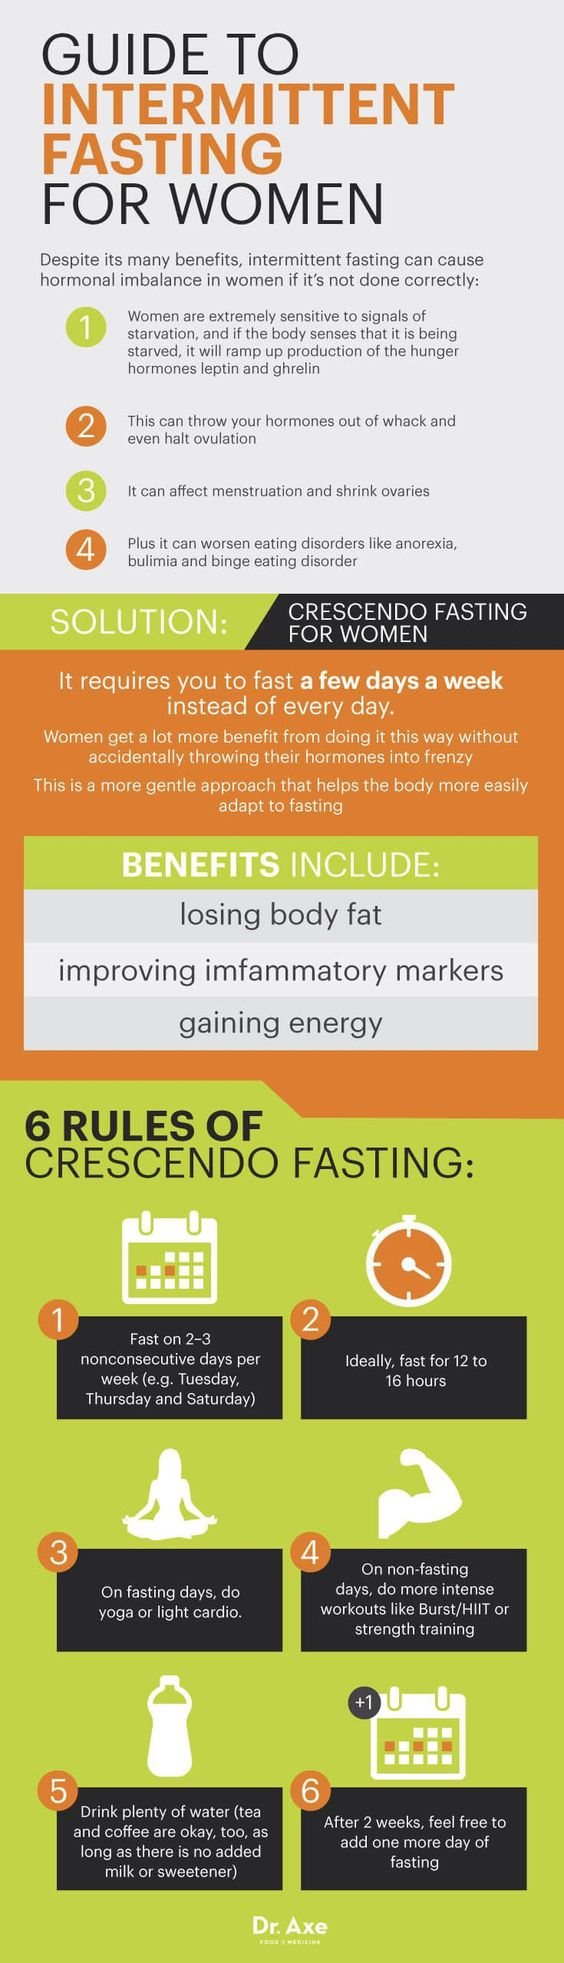 guide to Intermittent Fasting for women